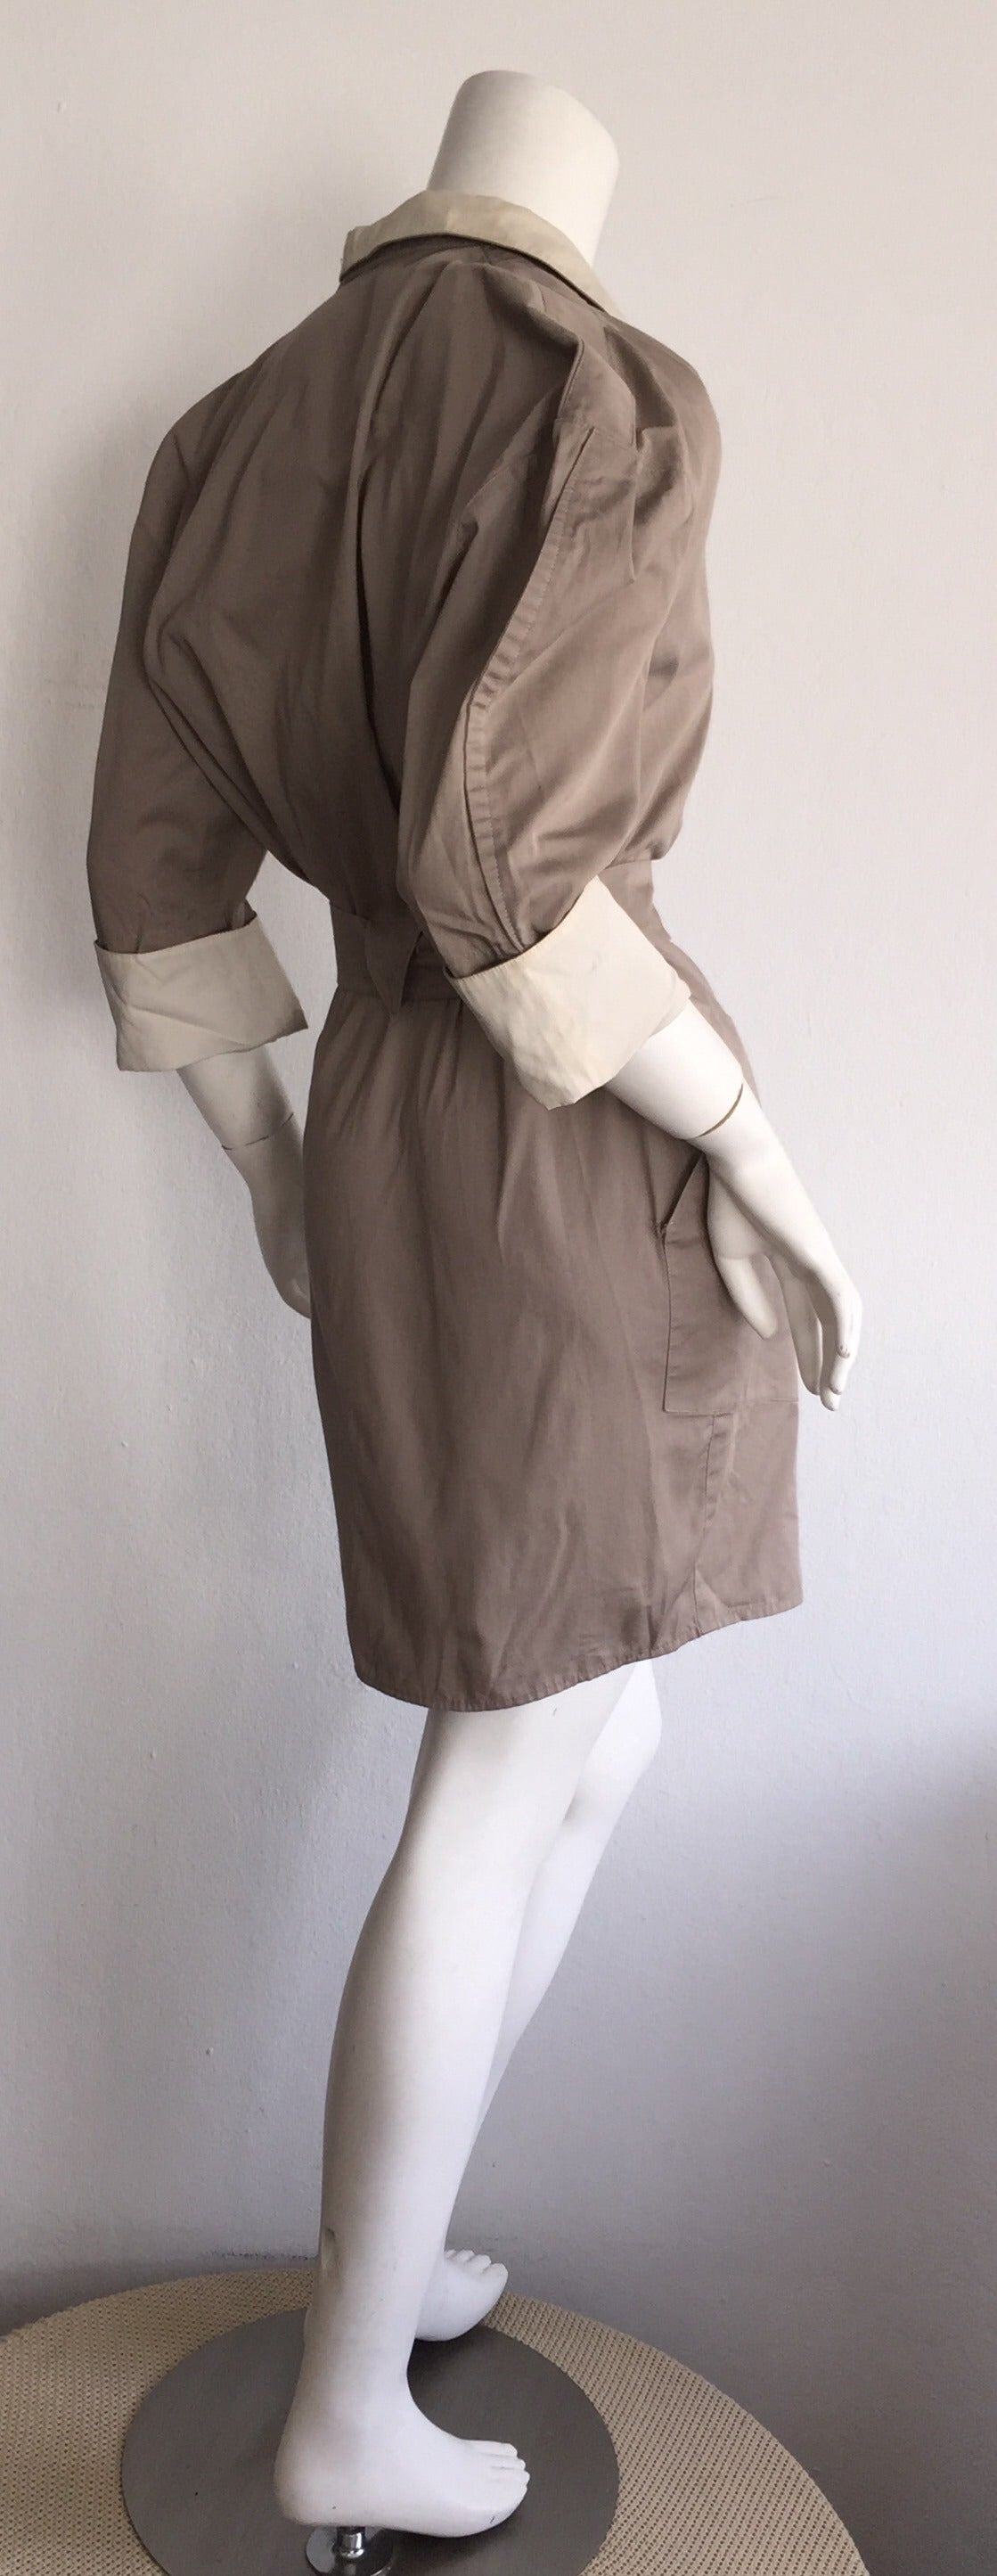 Sexy Vintage Thierry Mugler Avant Garde Belted Khaki Safari Shirt Dress 5